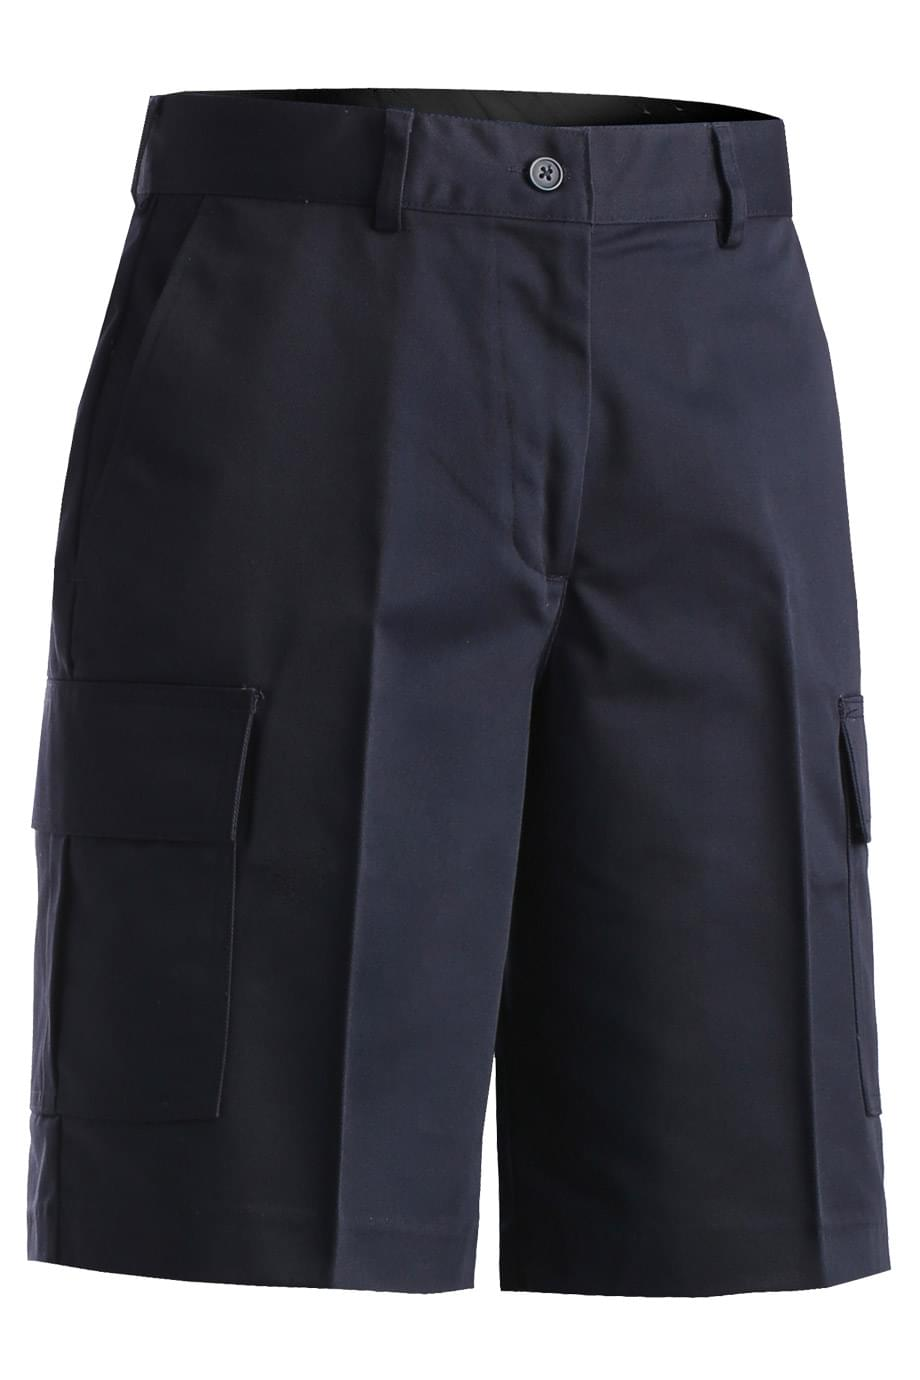 Edwards Garments Women's Cargo Moisture Wicking Short 8473 at Sears.com